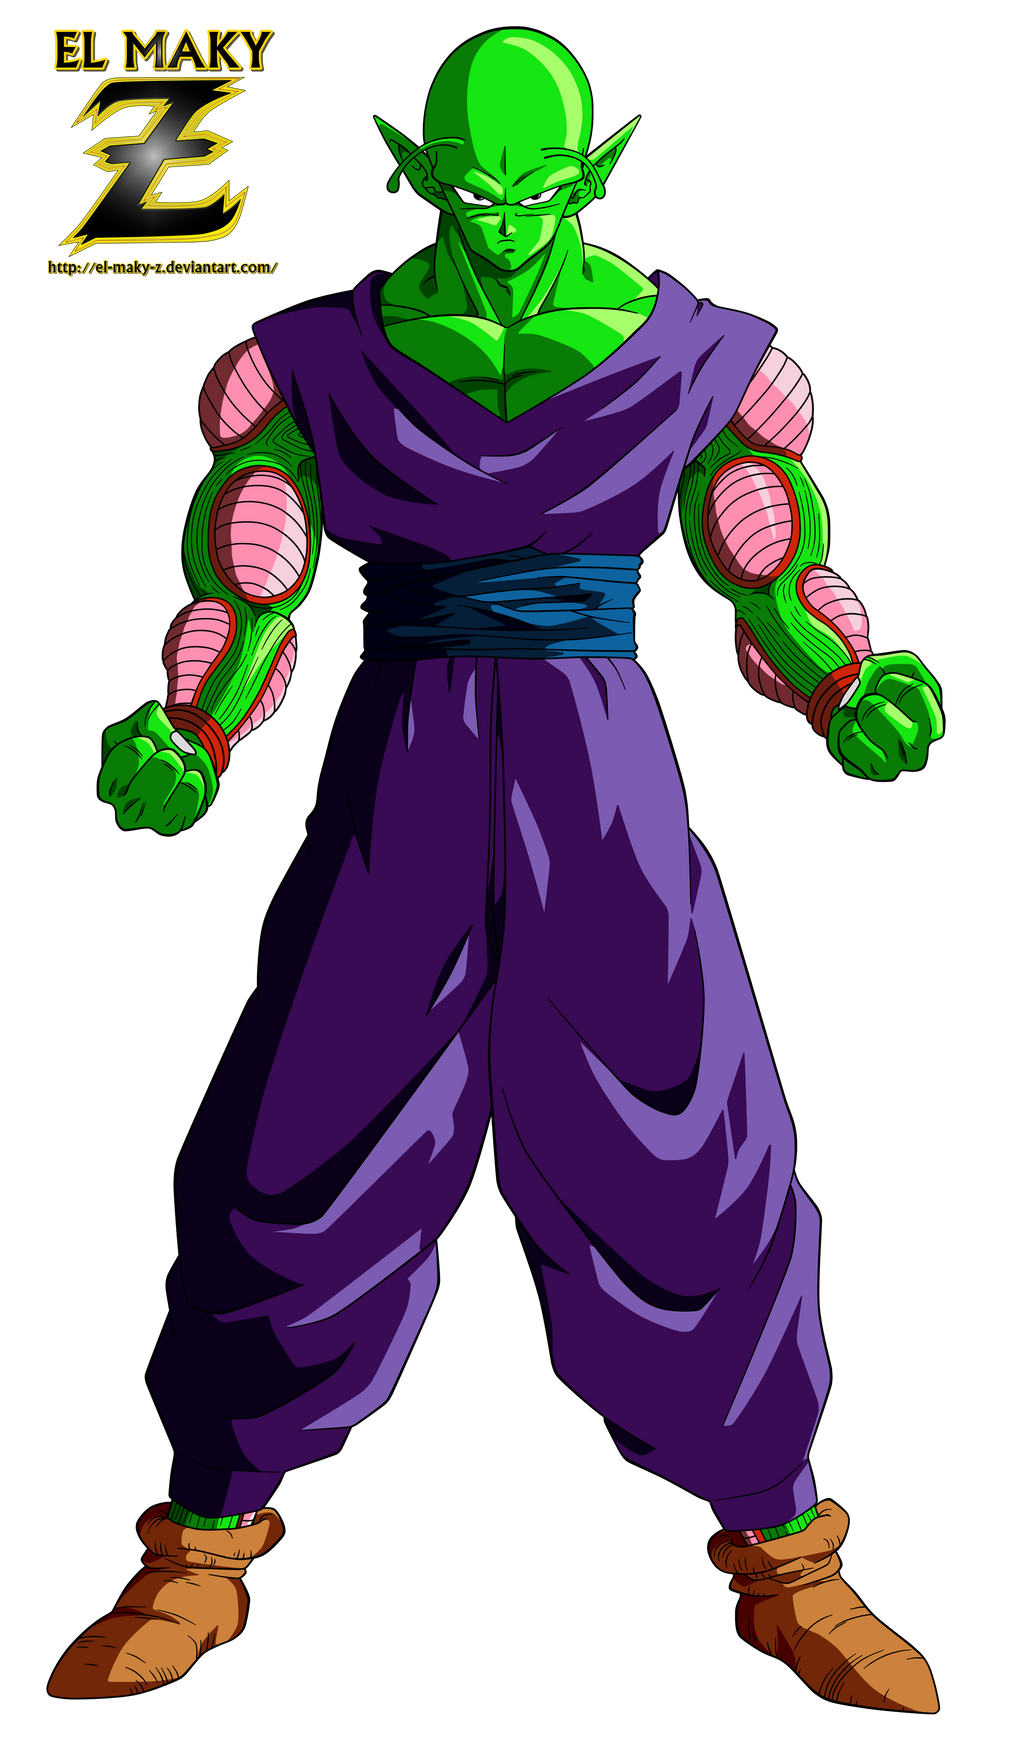 Piccolo (Android Saga) by el-maky-z on DeviantArt